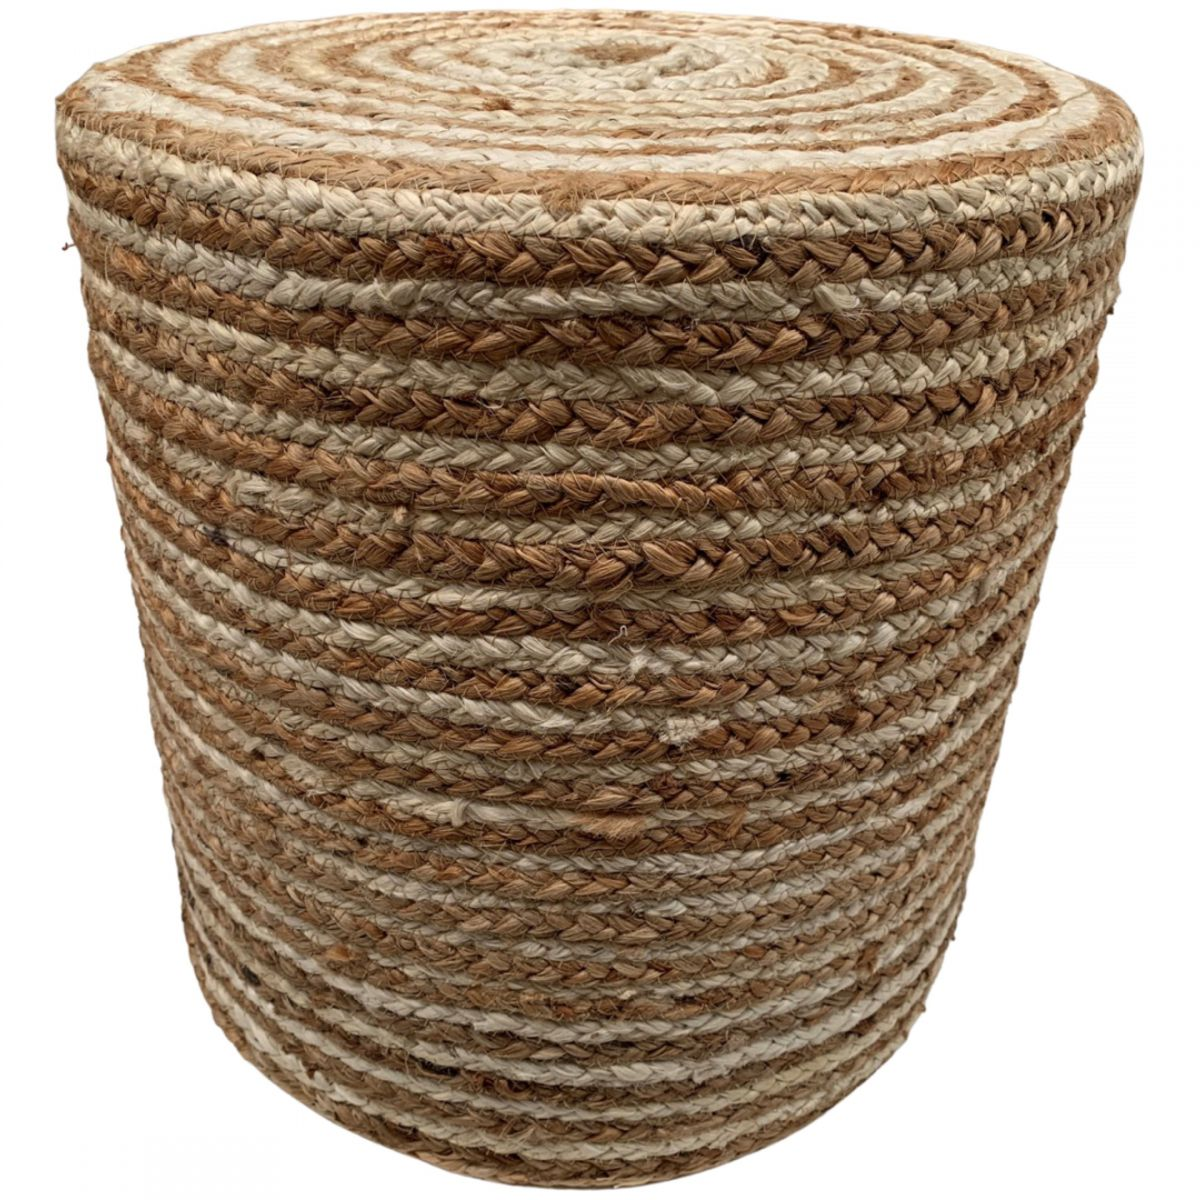 pouf braided jute offwhite with stripes round 40hg35cm concentric